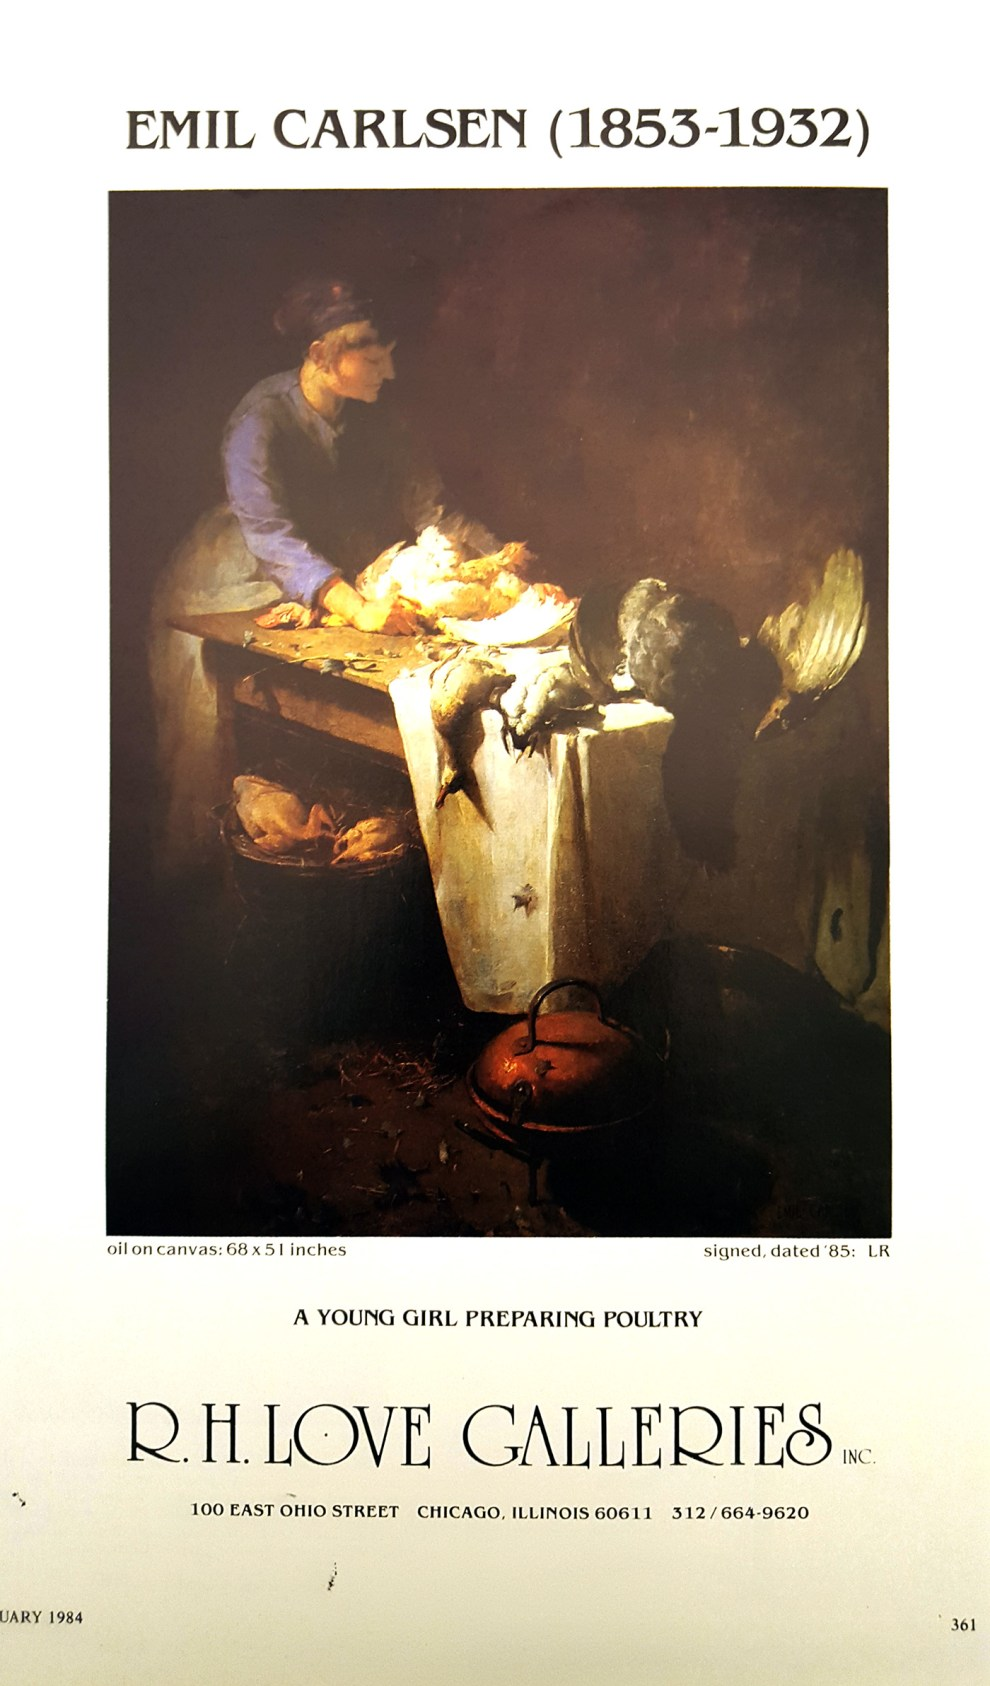 """Emil Carlsen Ad for R.H. Love Galleries, Inc."", Chicago, IL, unknown magazine, January, 1984, page 361, illustrated: color"